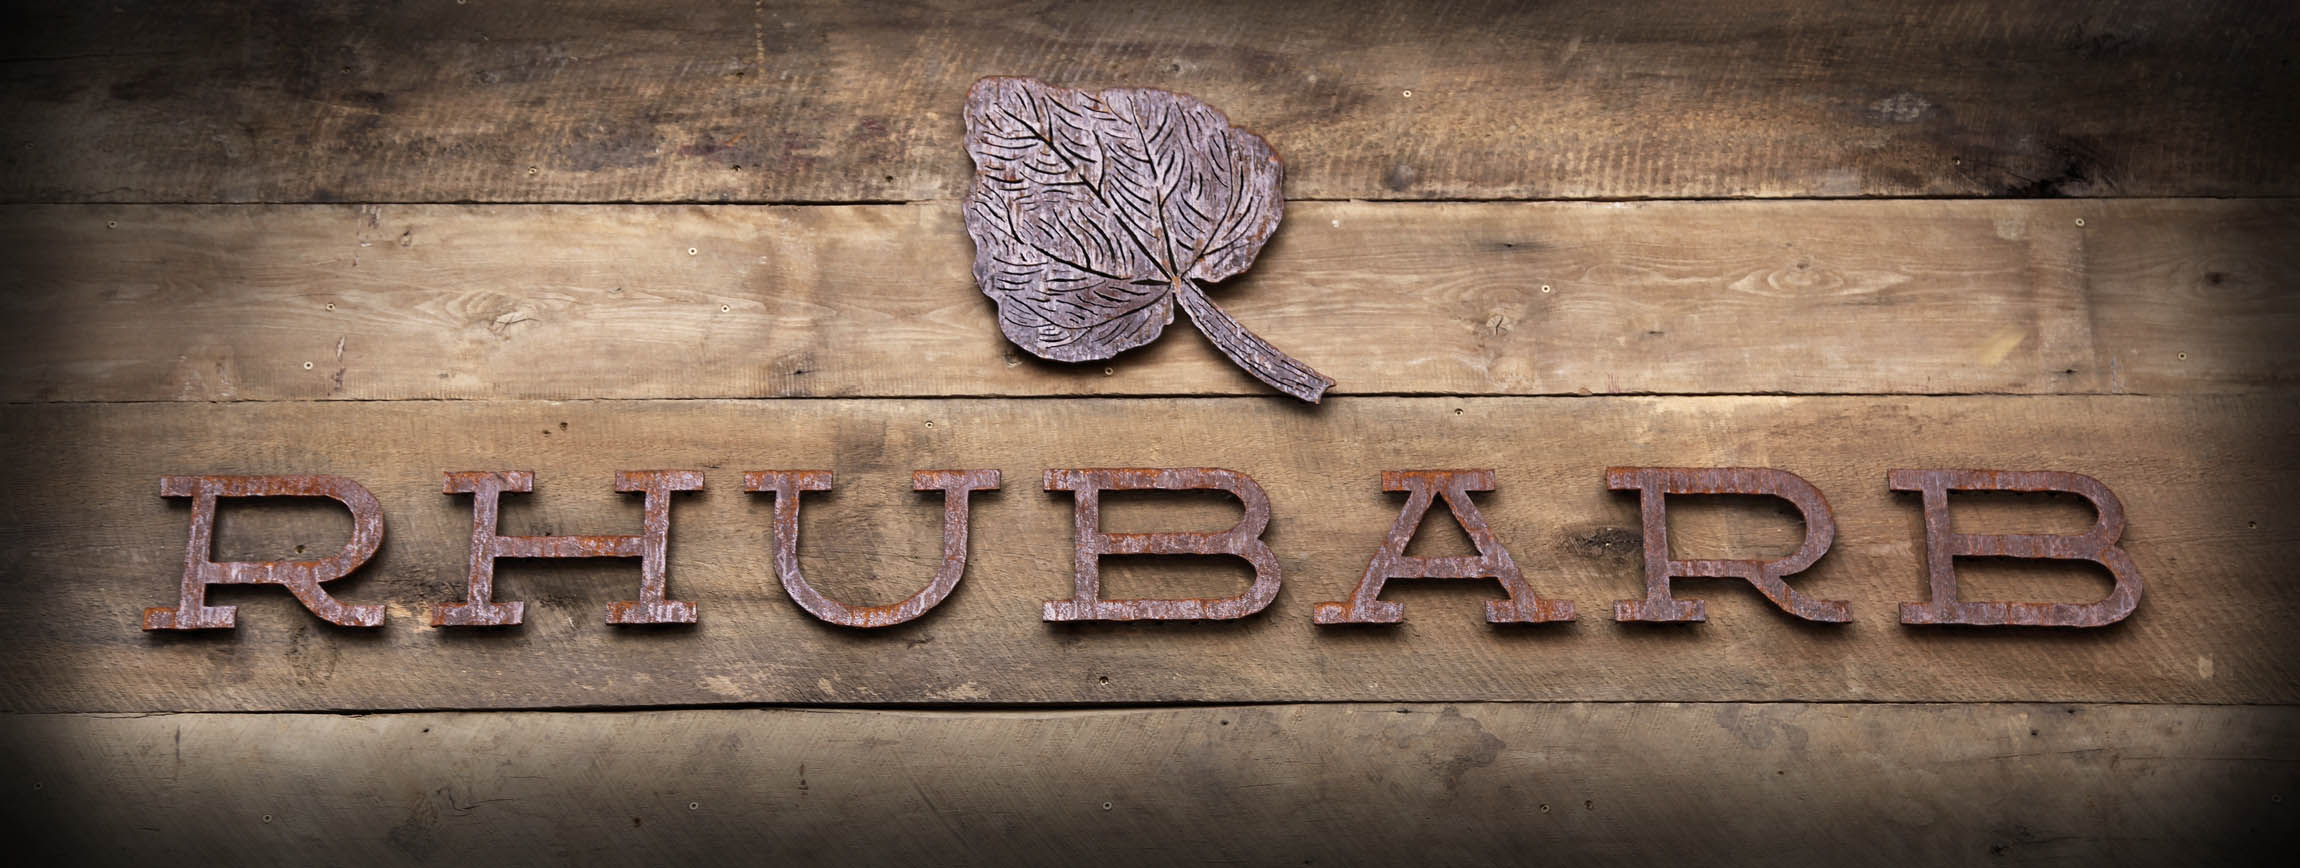 Ashevilles Newest Restaurant Rhubarb Offers Rustic Charm Outstanding Menu